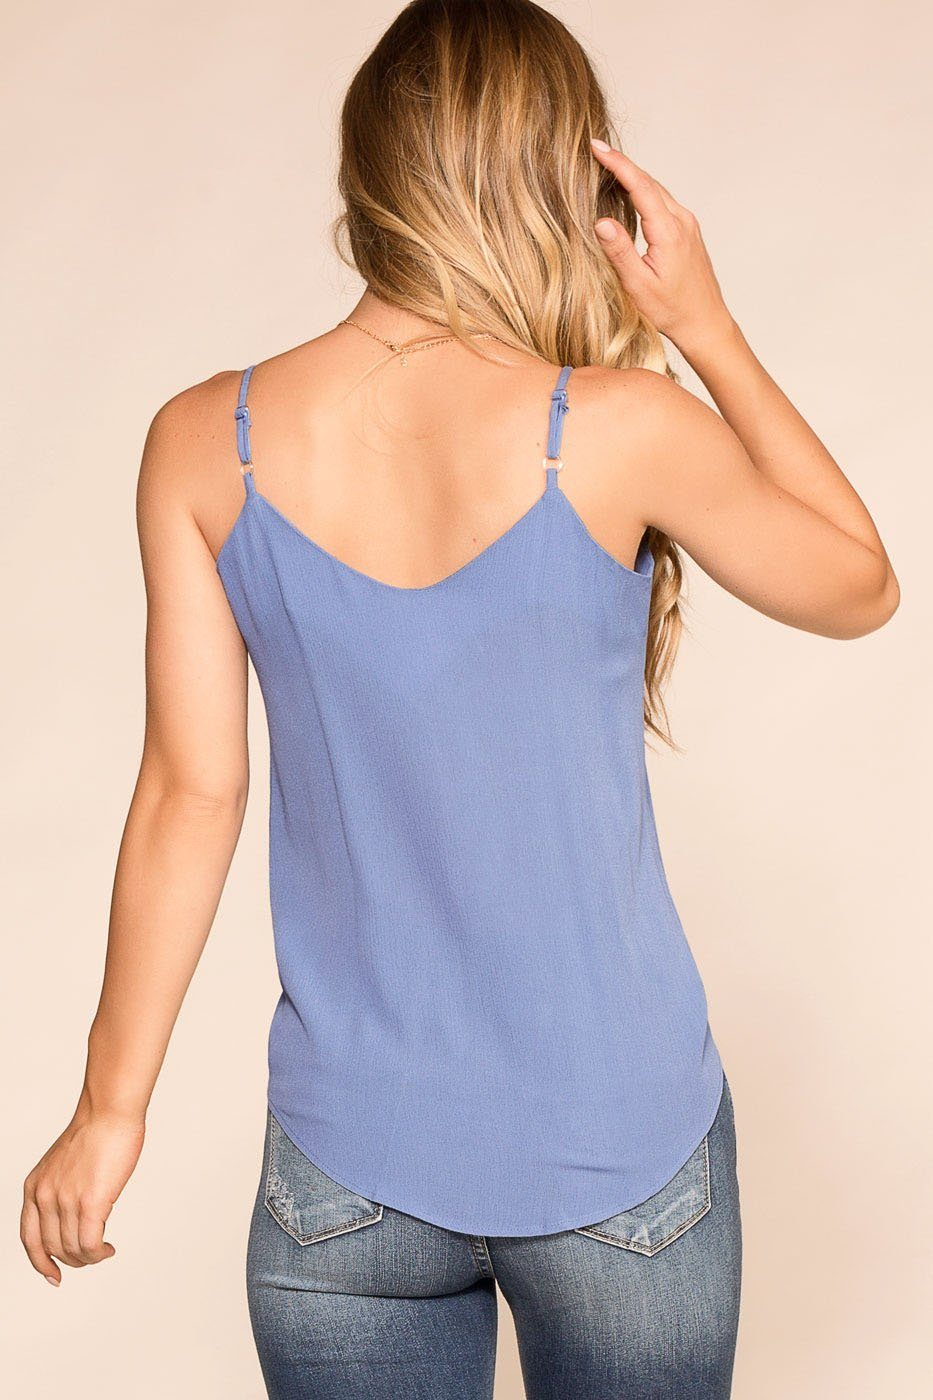 Paige Blue Button Tank Top | Rosegold